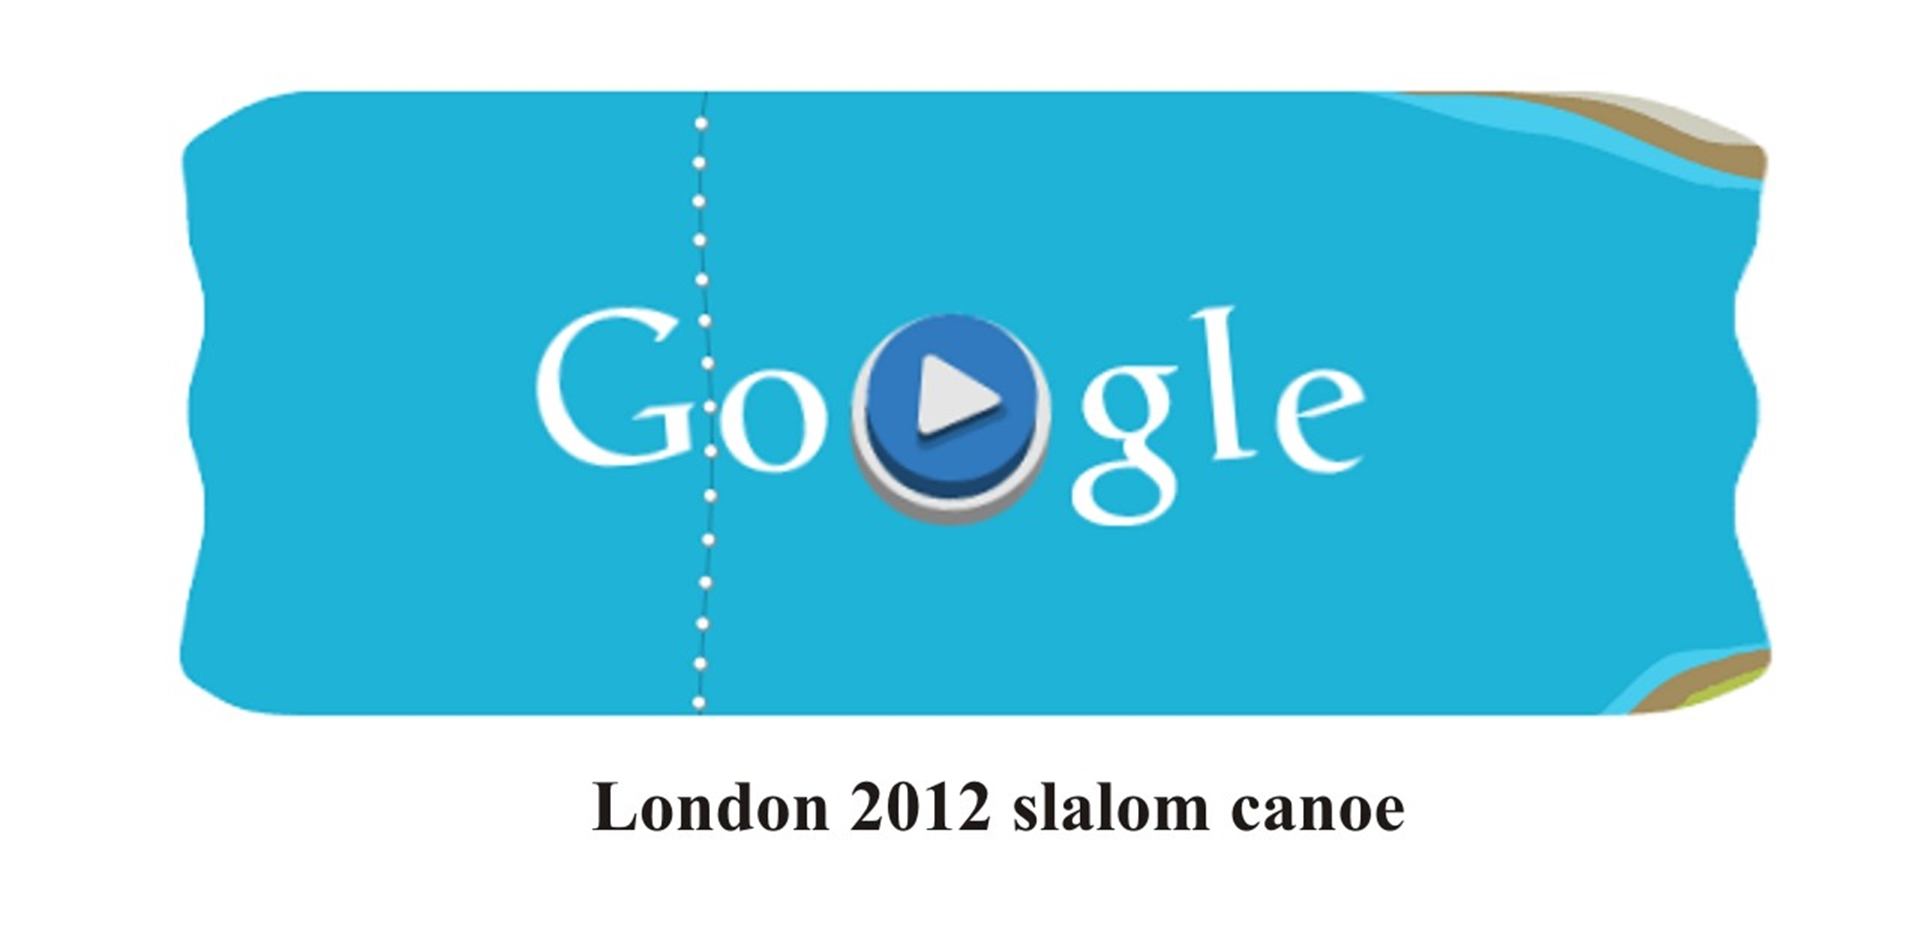 London 2012 slalom canoe game